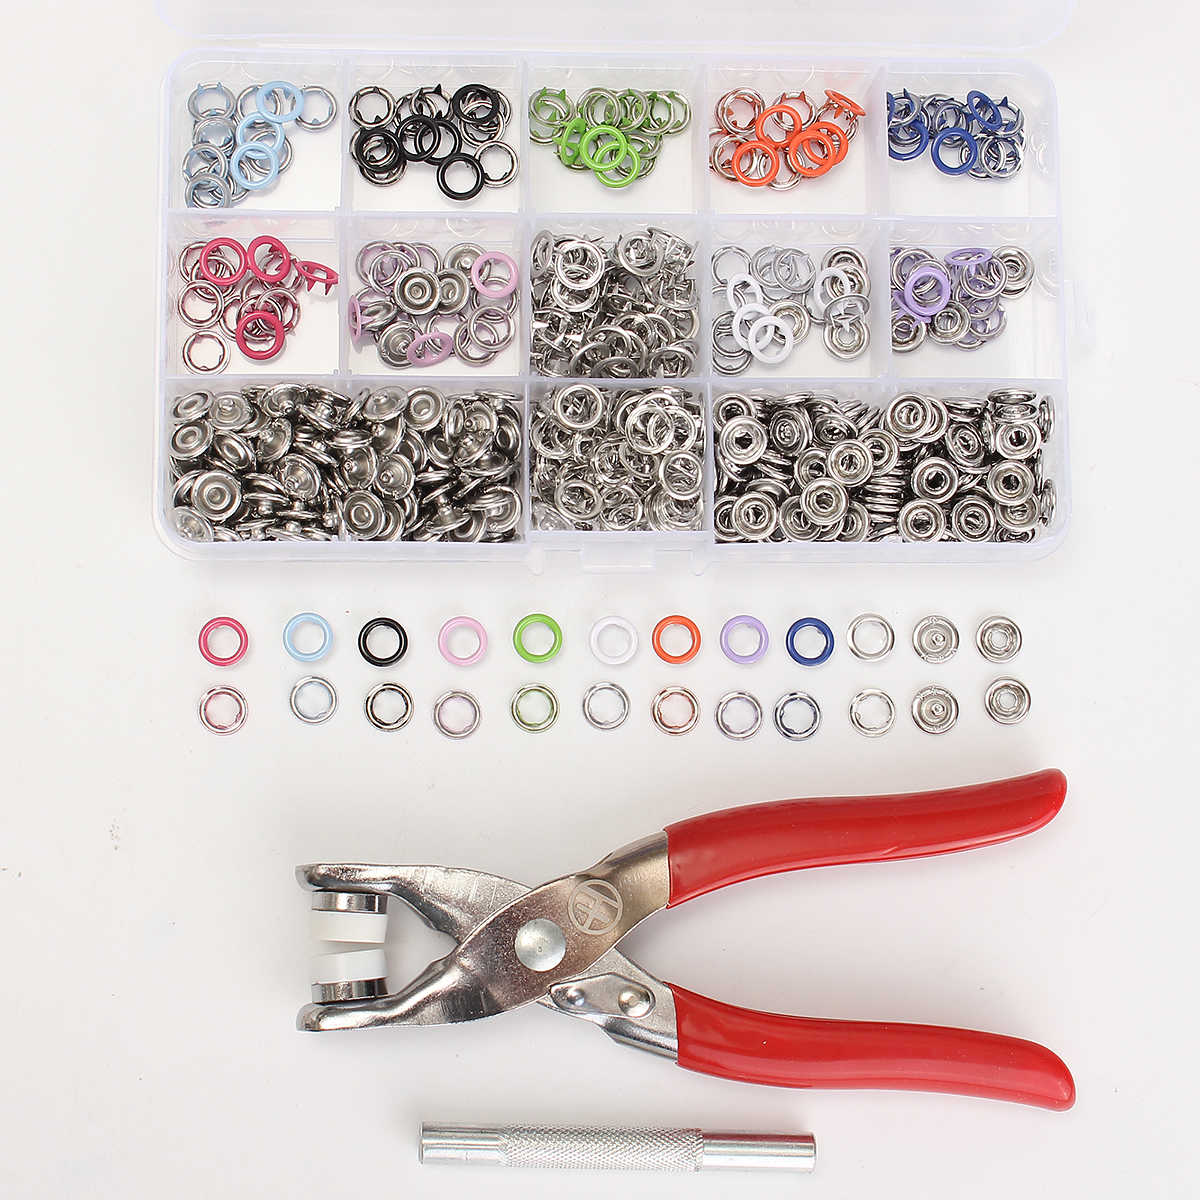 150 Sets 9.5mm 10 Colors Prong Ring Press Studs Snap Sewing Fasteners Dummy Clip Pliers Poppers Plier